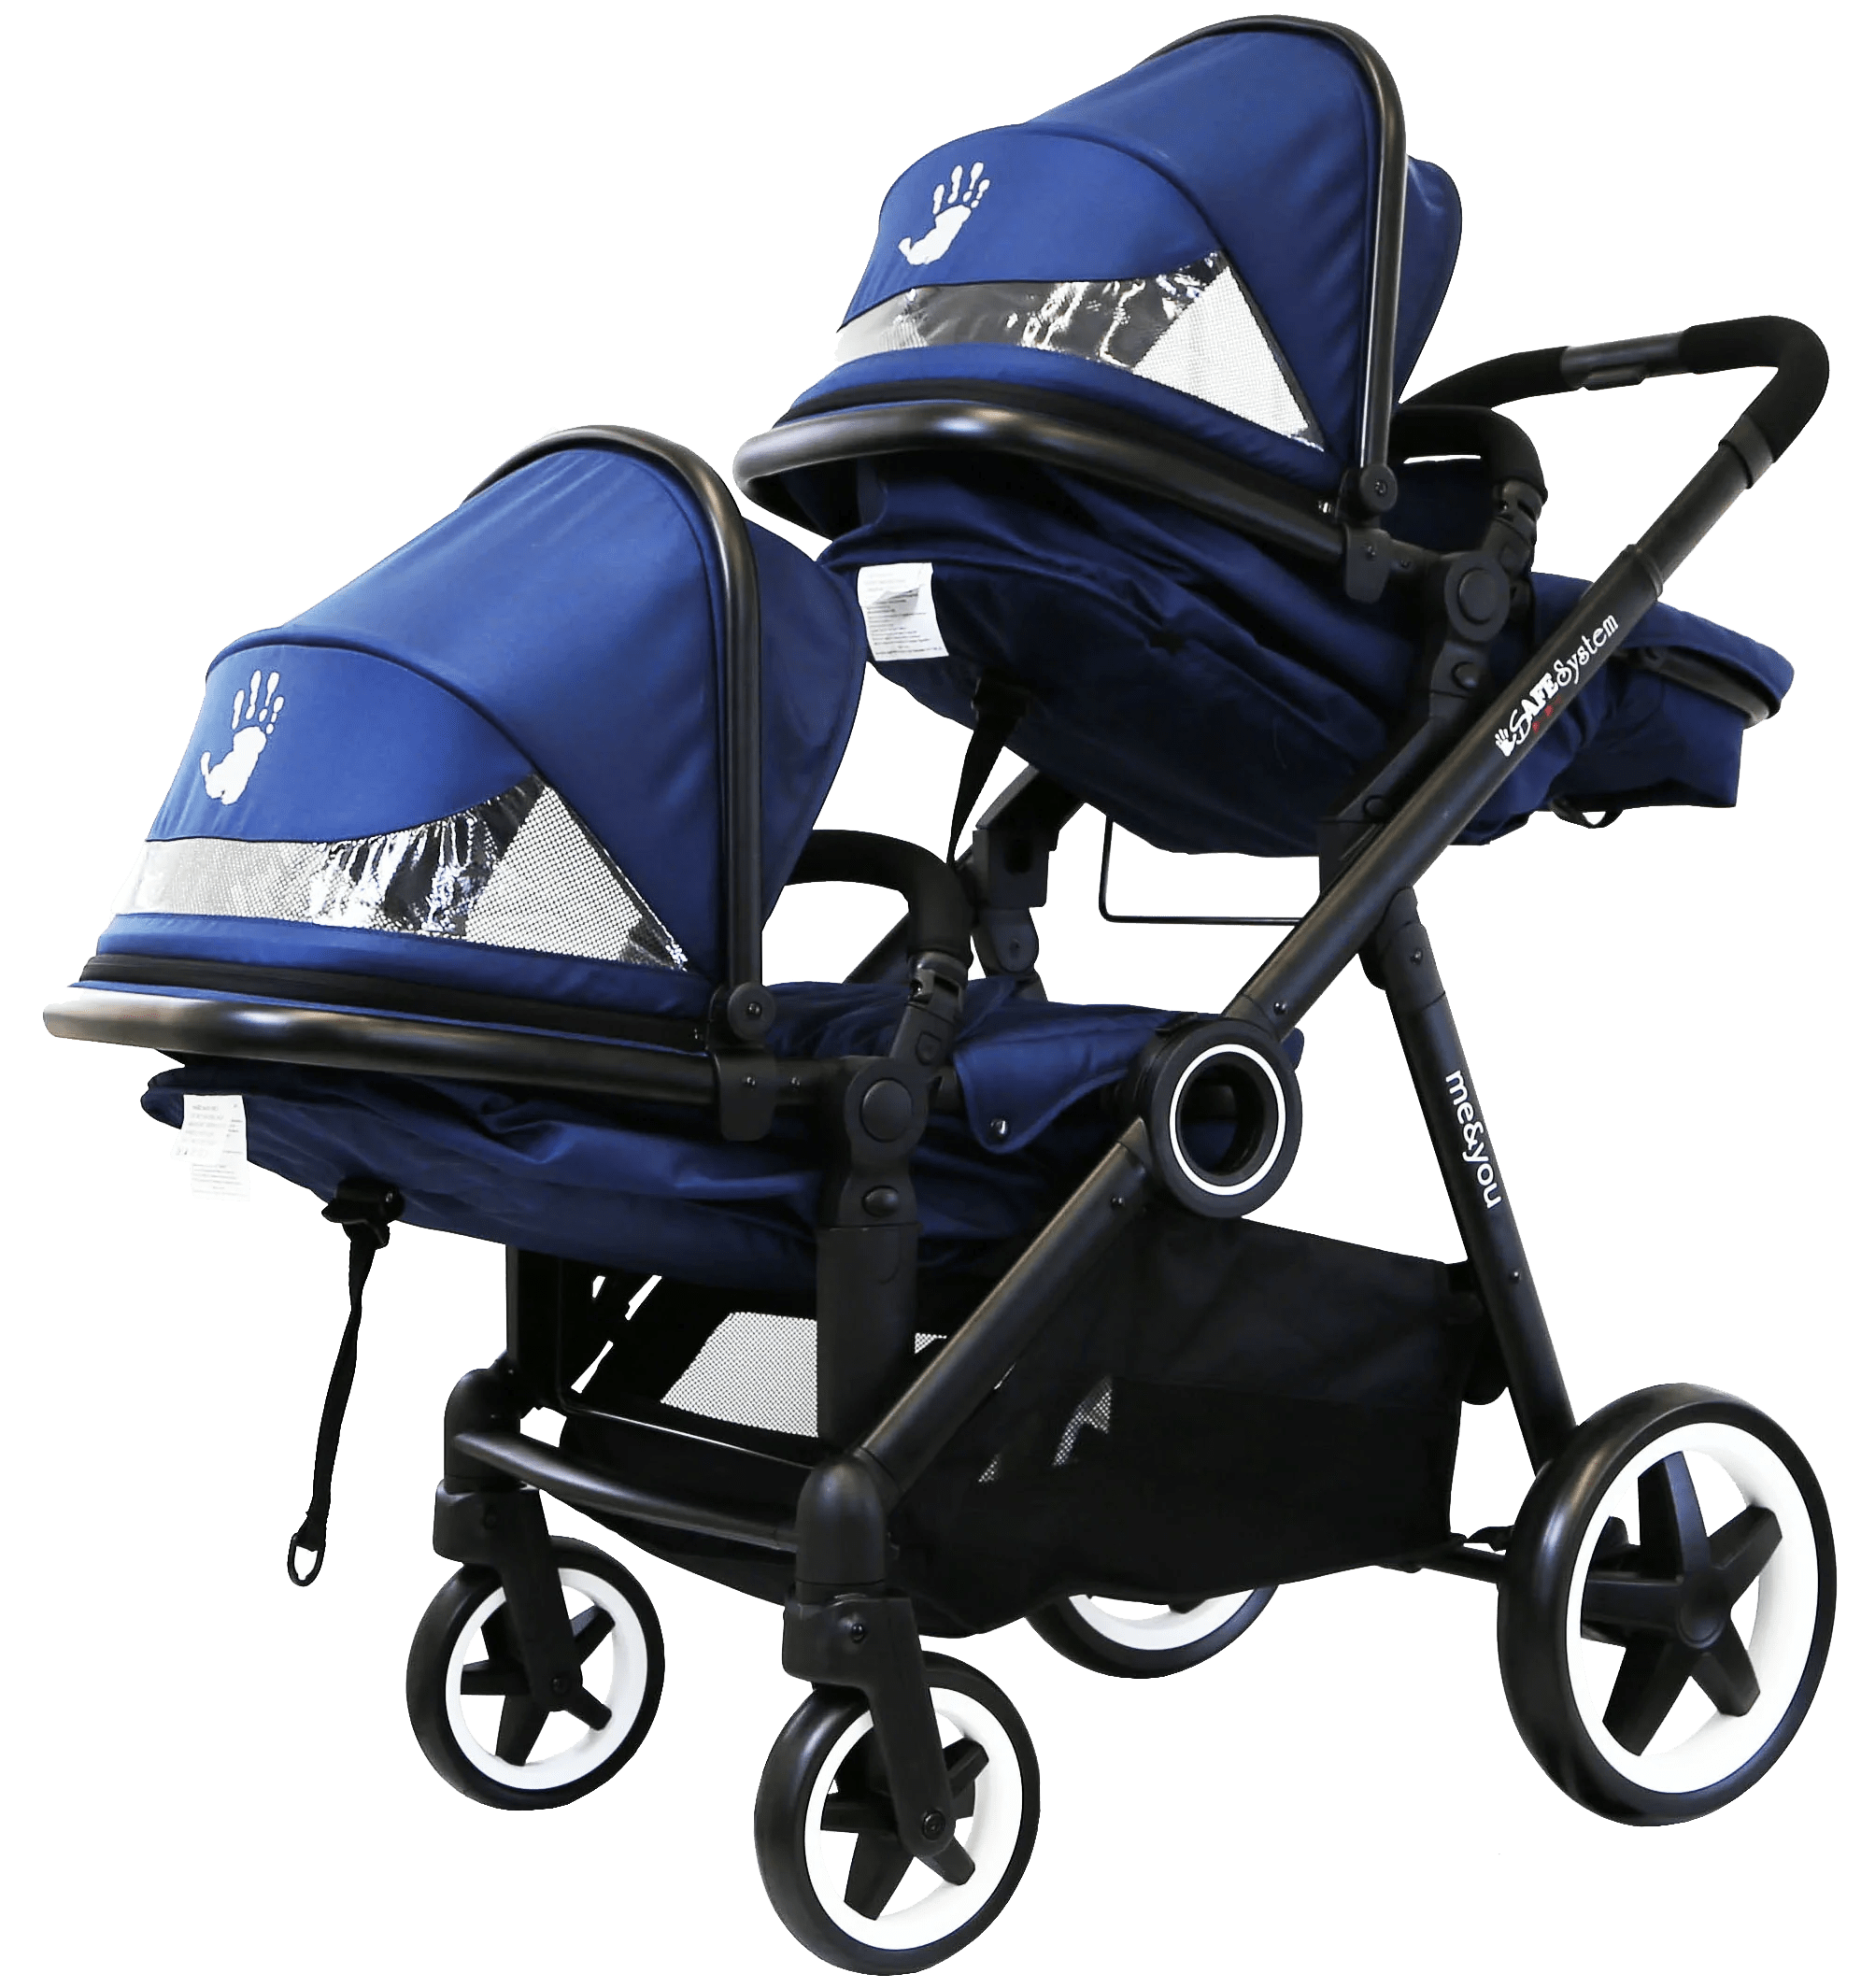 Double Stroller Expensive Sale Now On Save Up To 50 Luxury Baby Prducts By Isafe